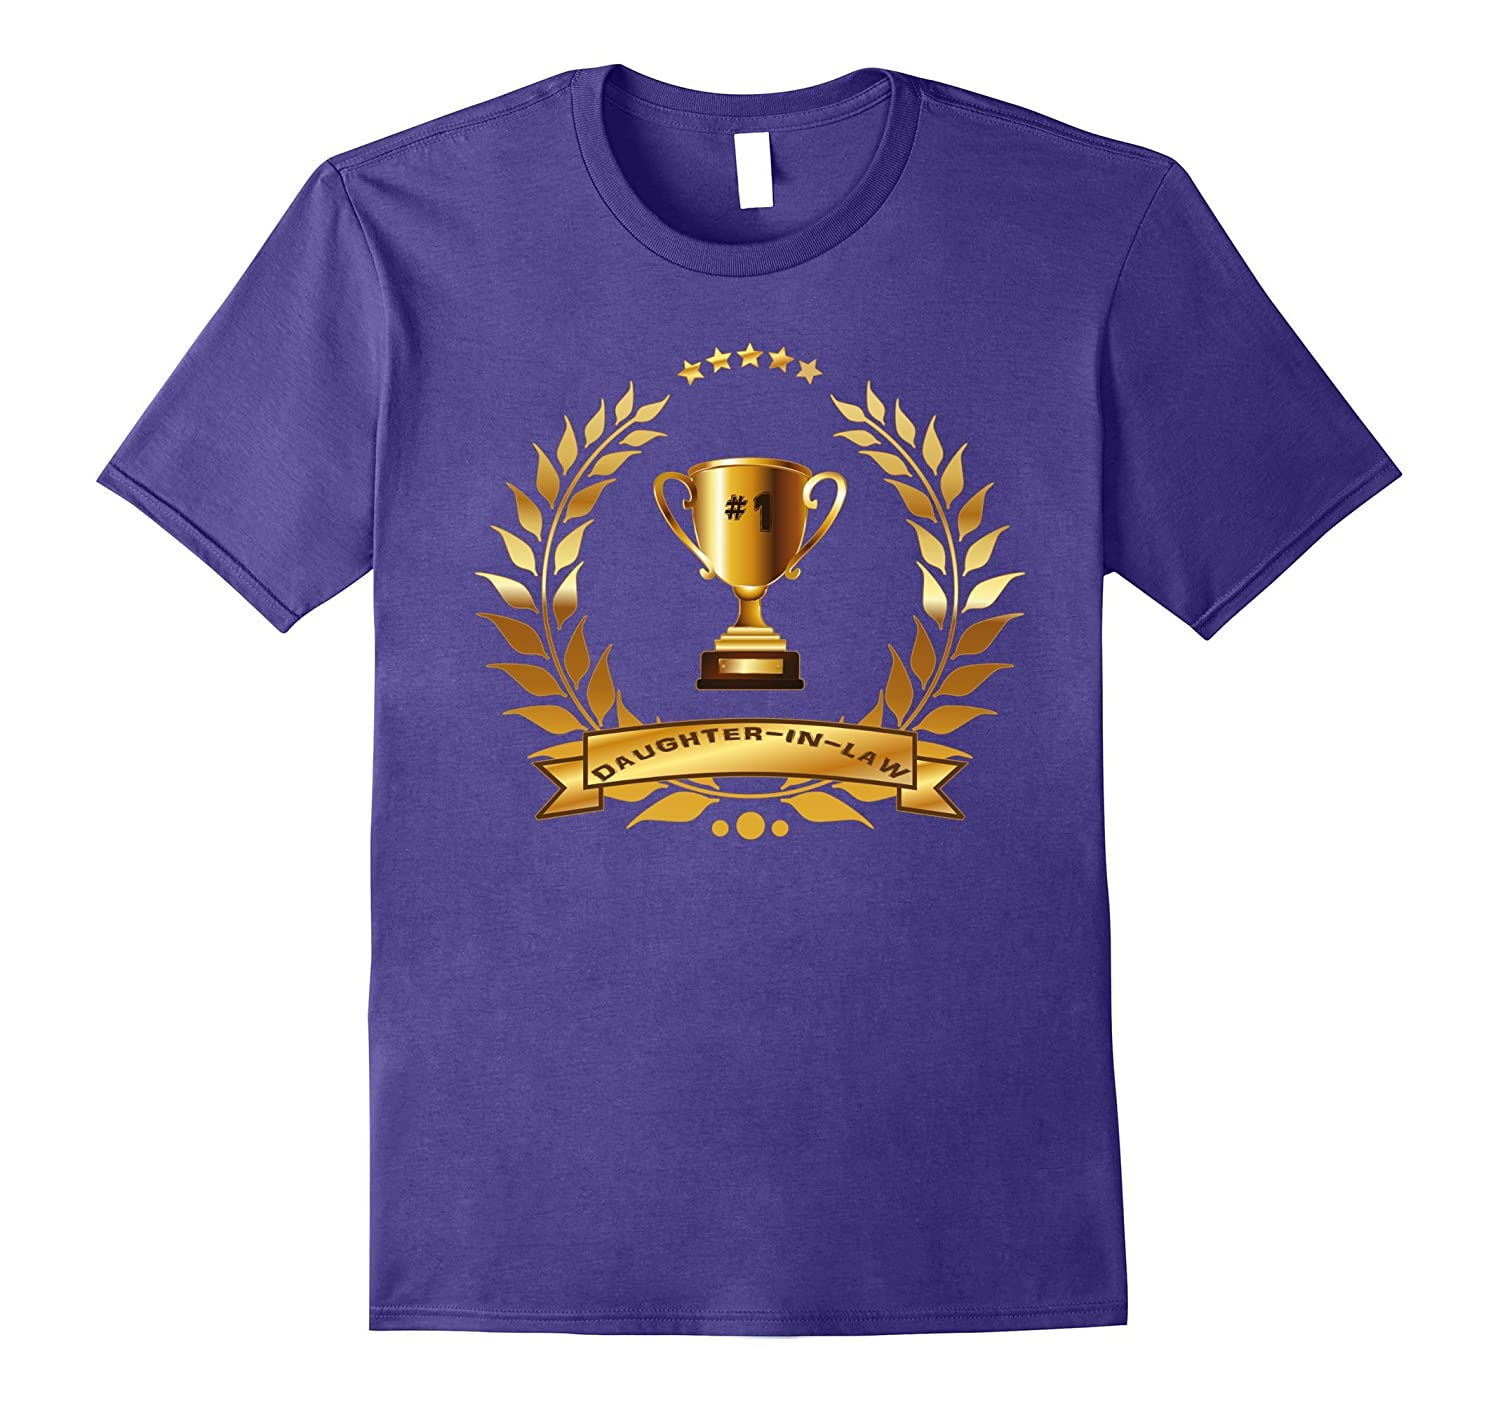 #1 Daughter-In-Law T-Shirt With Trophy-Gift For Women, Girls